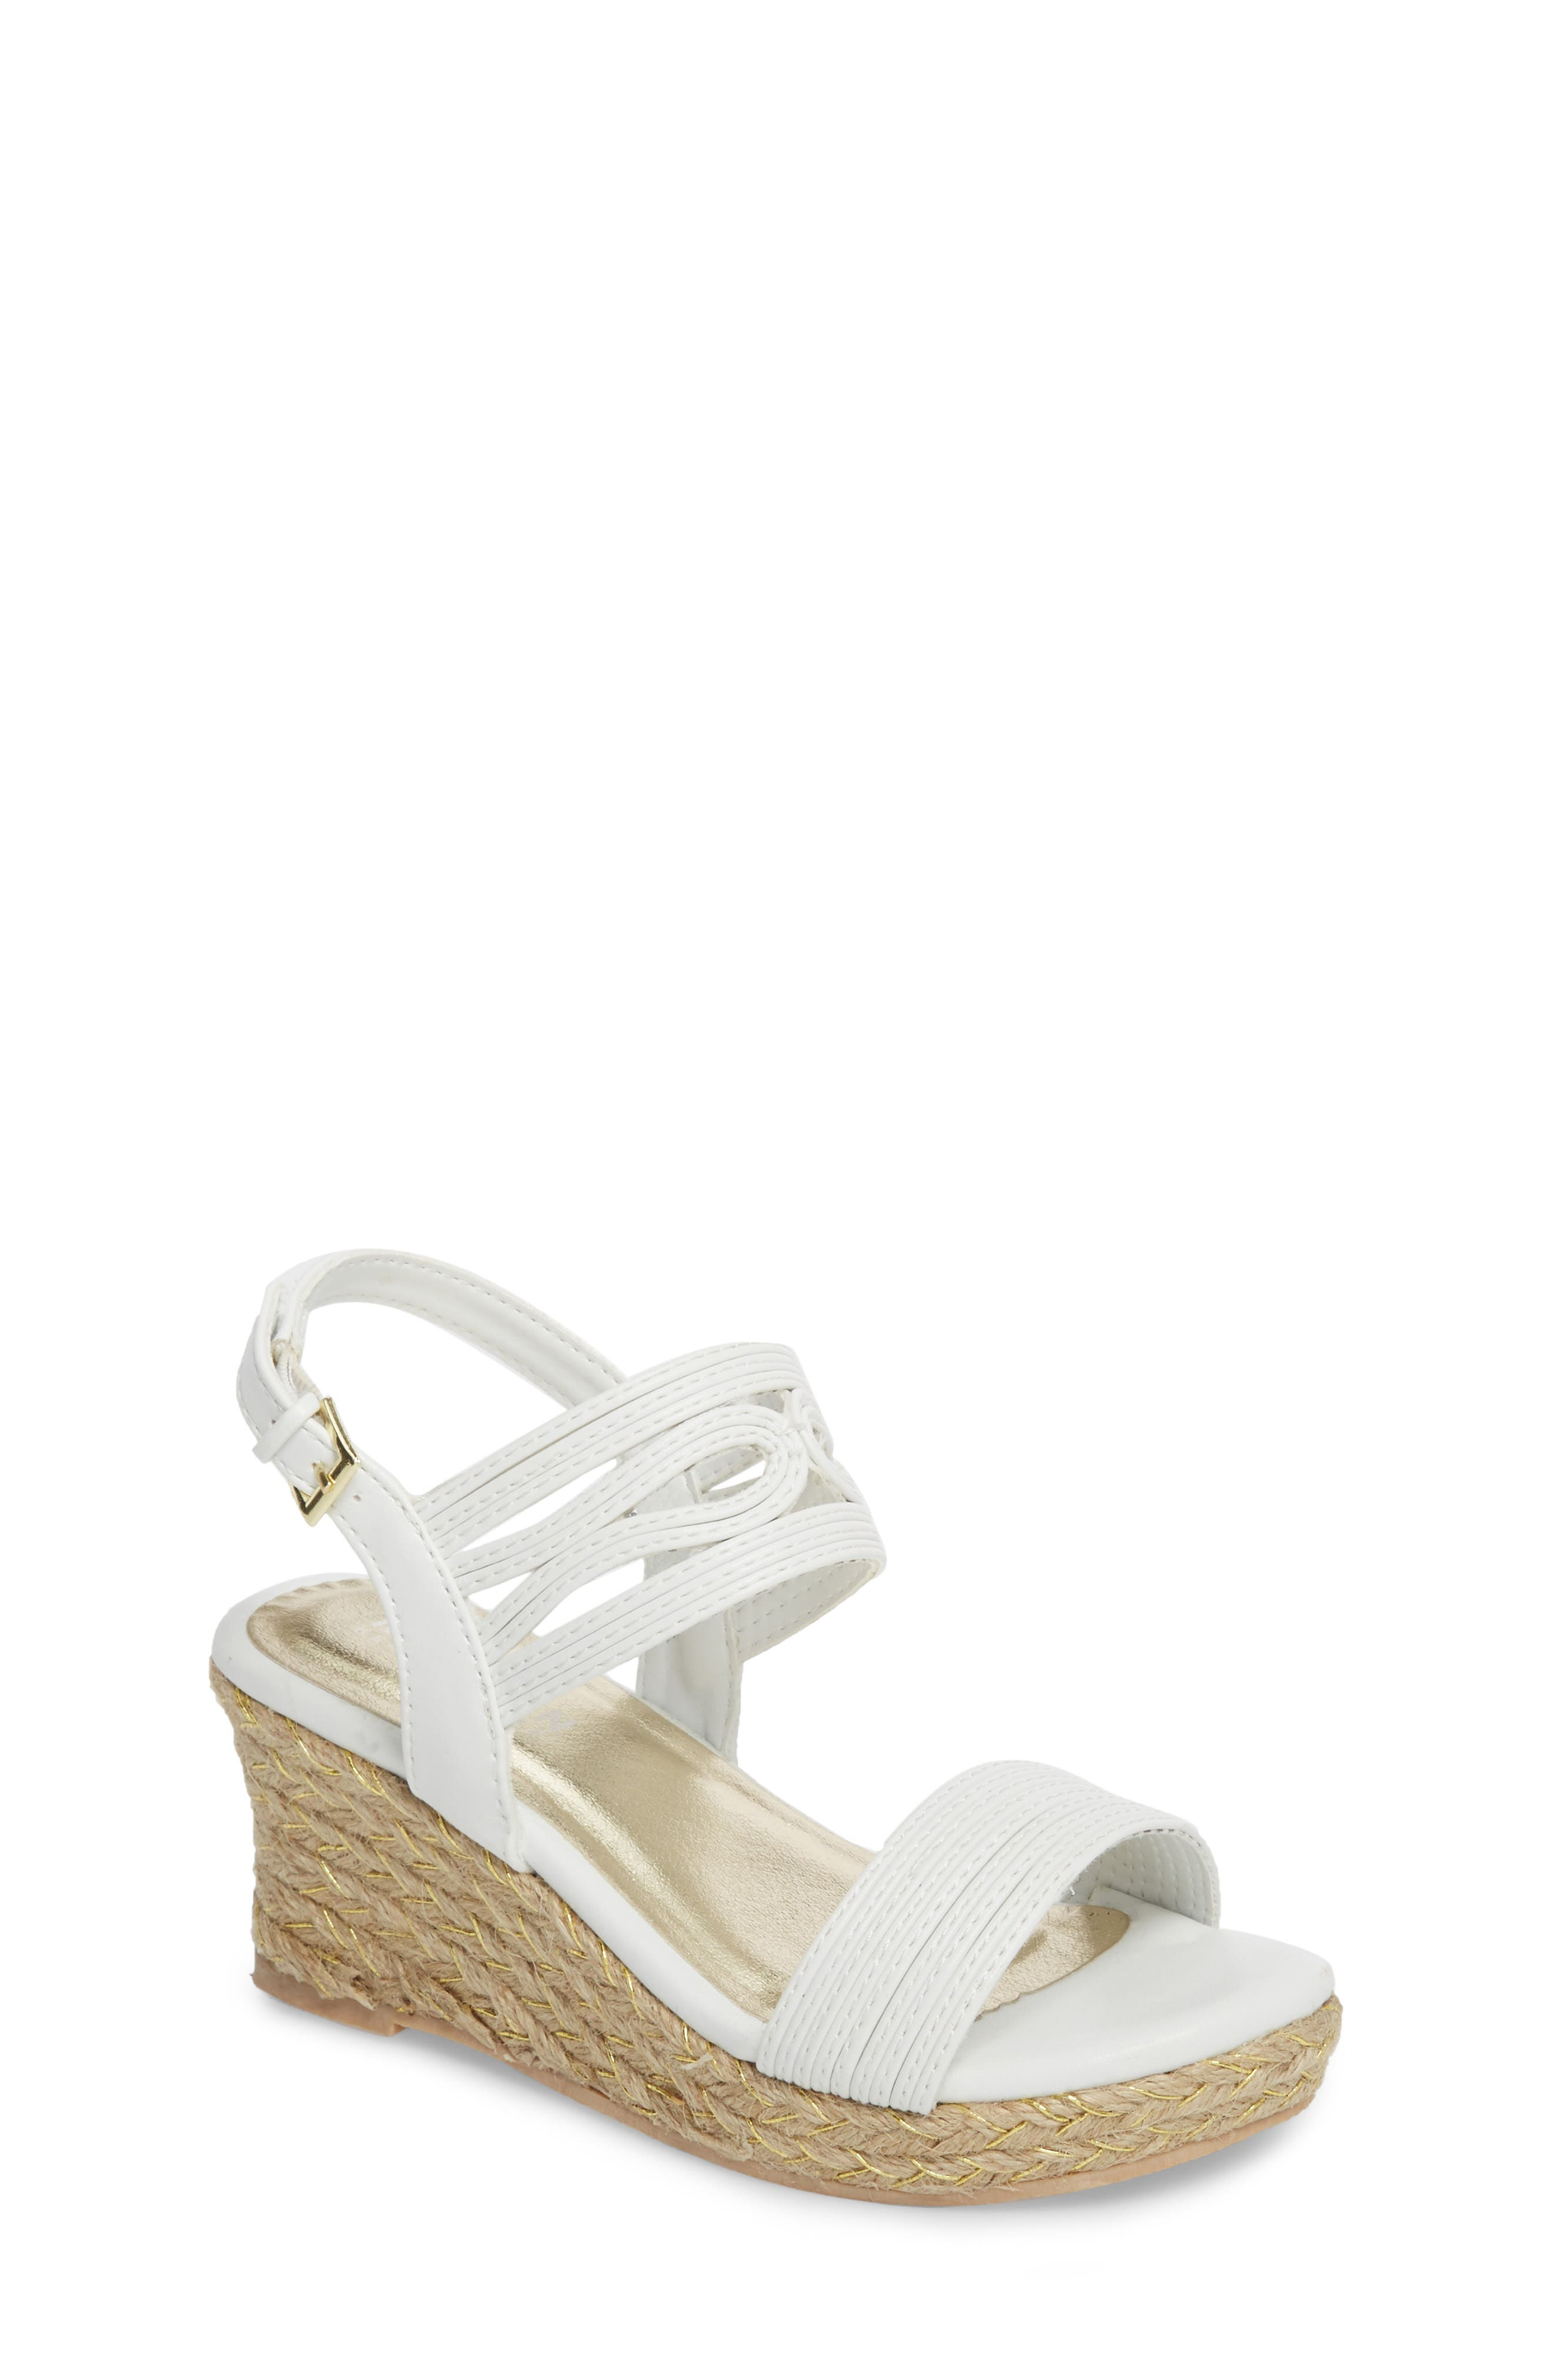 Reed Day Wedge Sandal,                             Main thumbnail 1, color,                             100